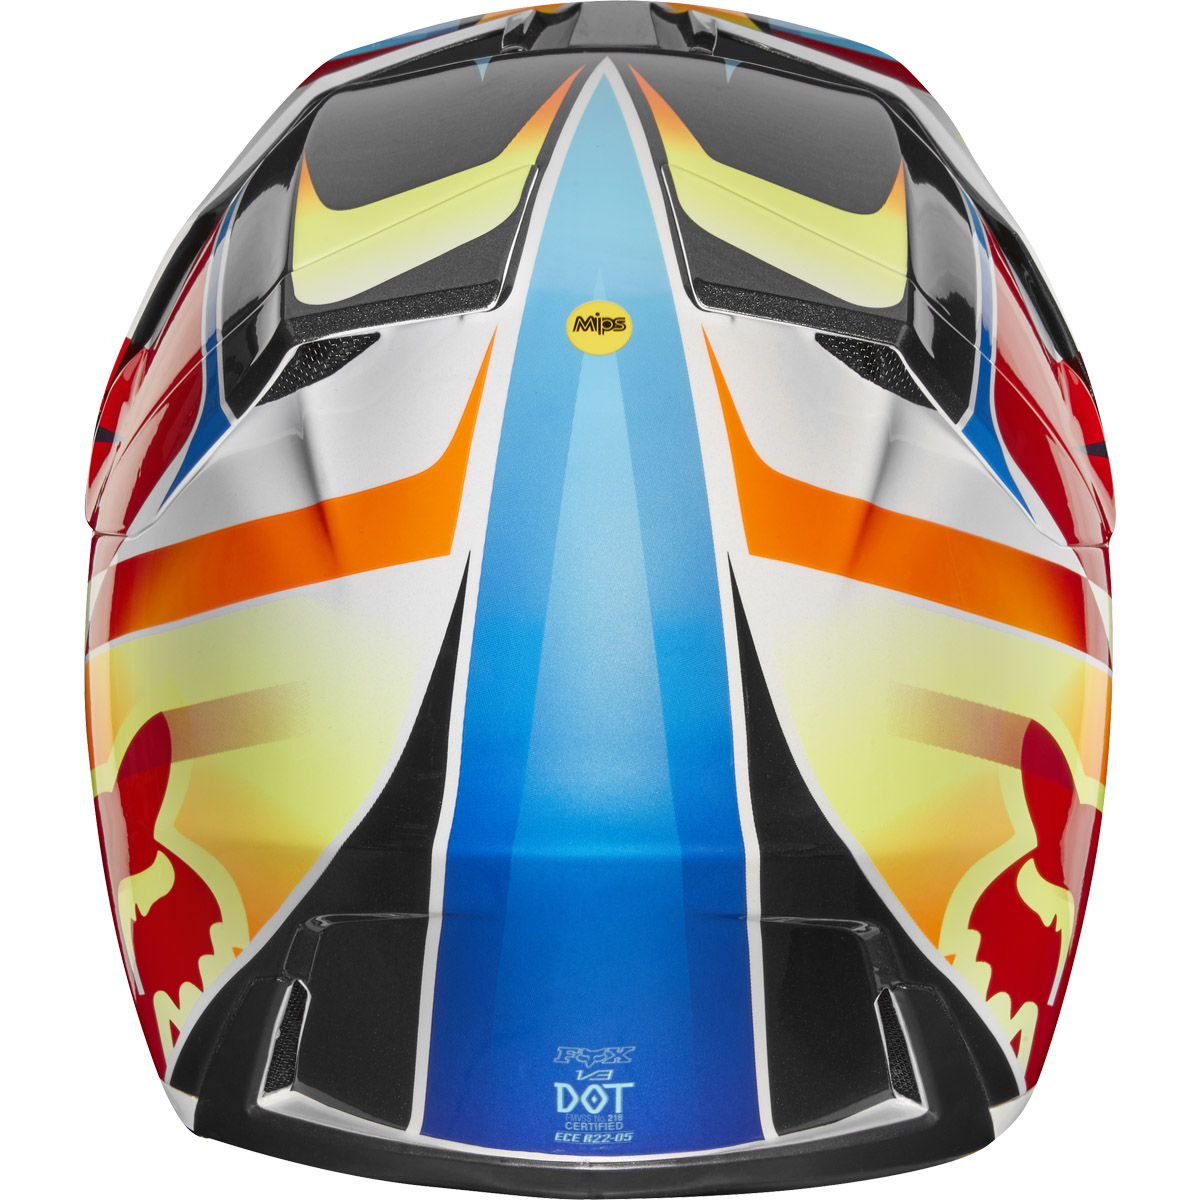 21768-080 Fox Racing 2019 V3 Motif Motocross Offroad Helmet Red Yellow Red Casque Enduro Crosshelm Helm